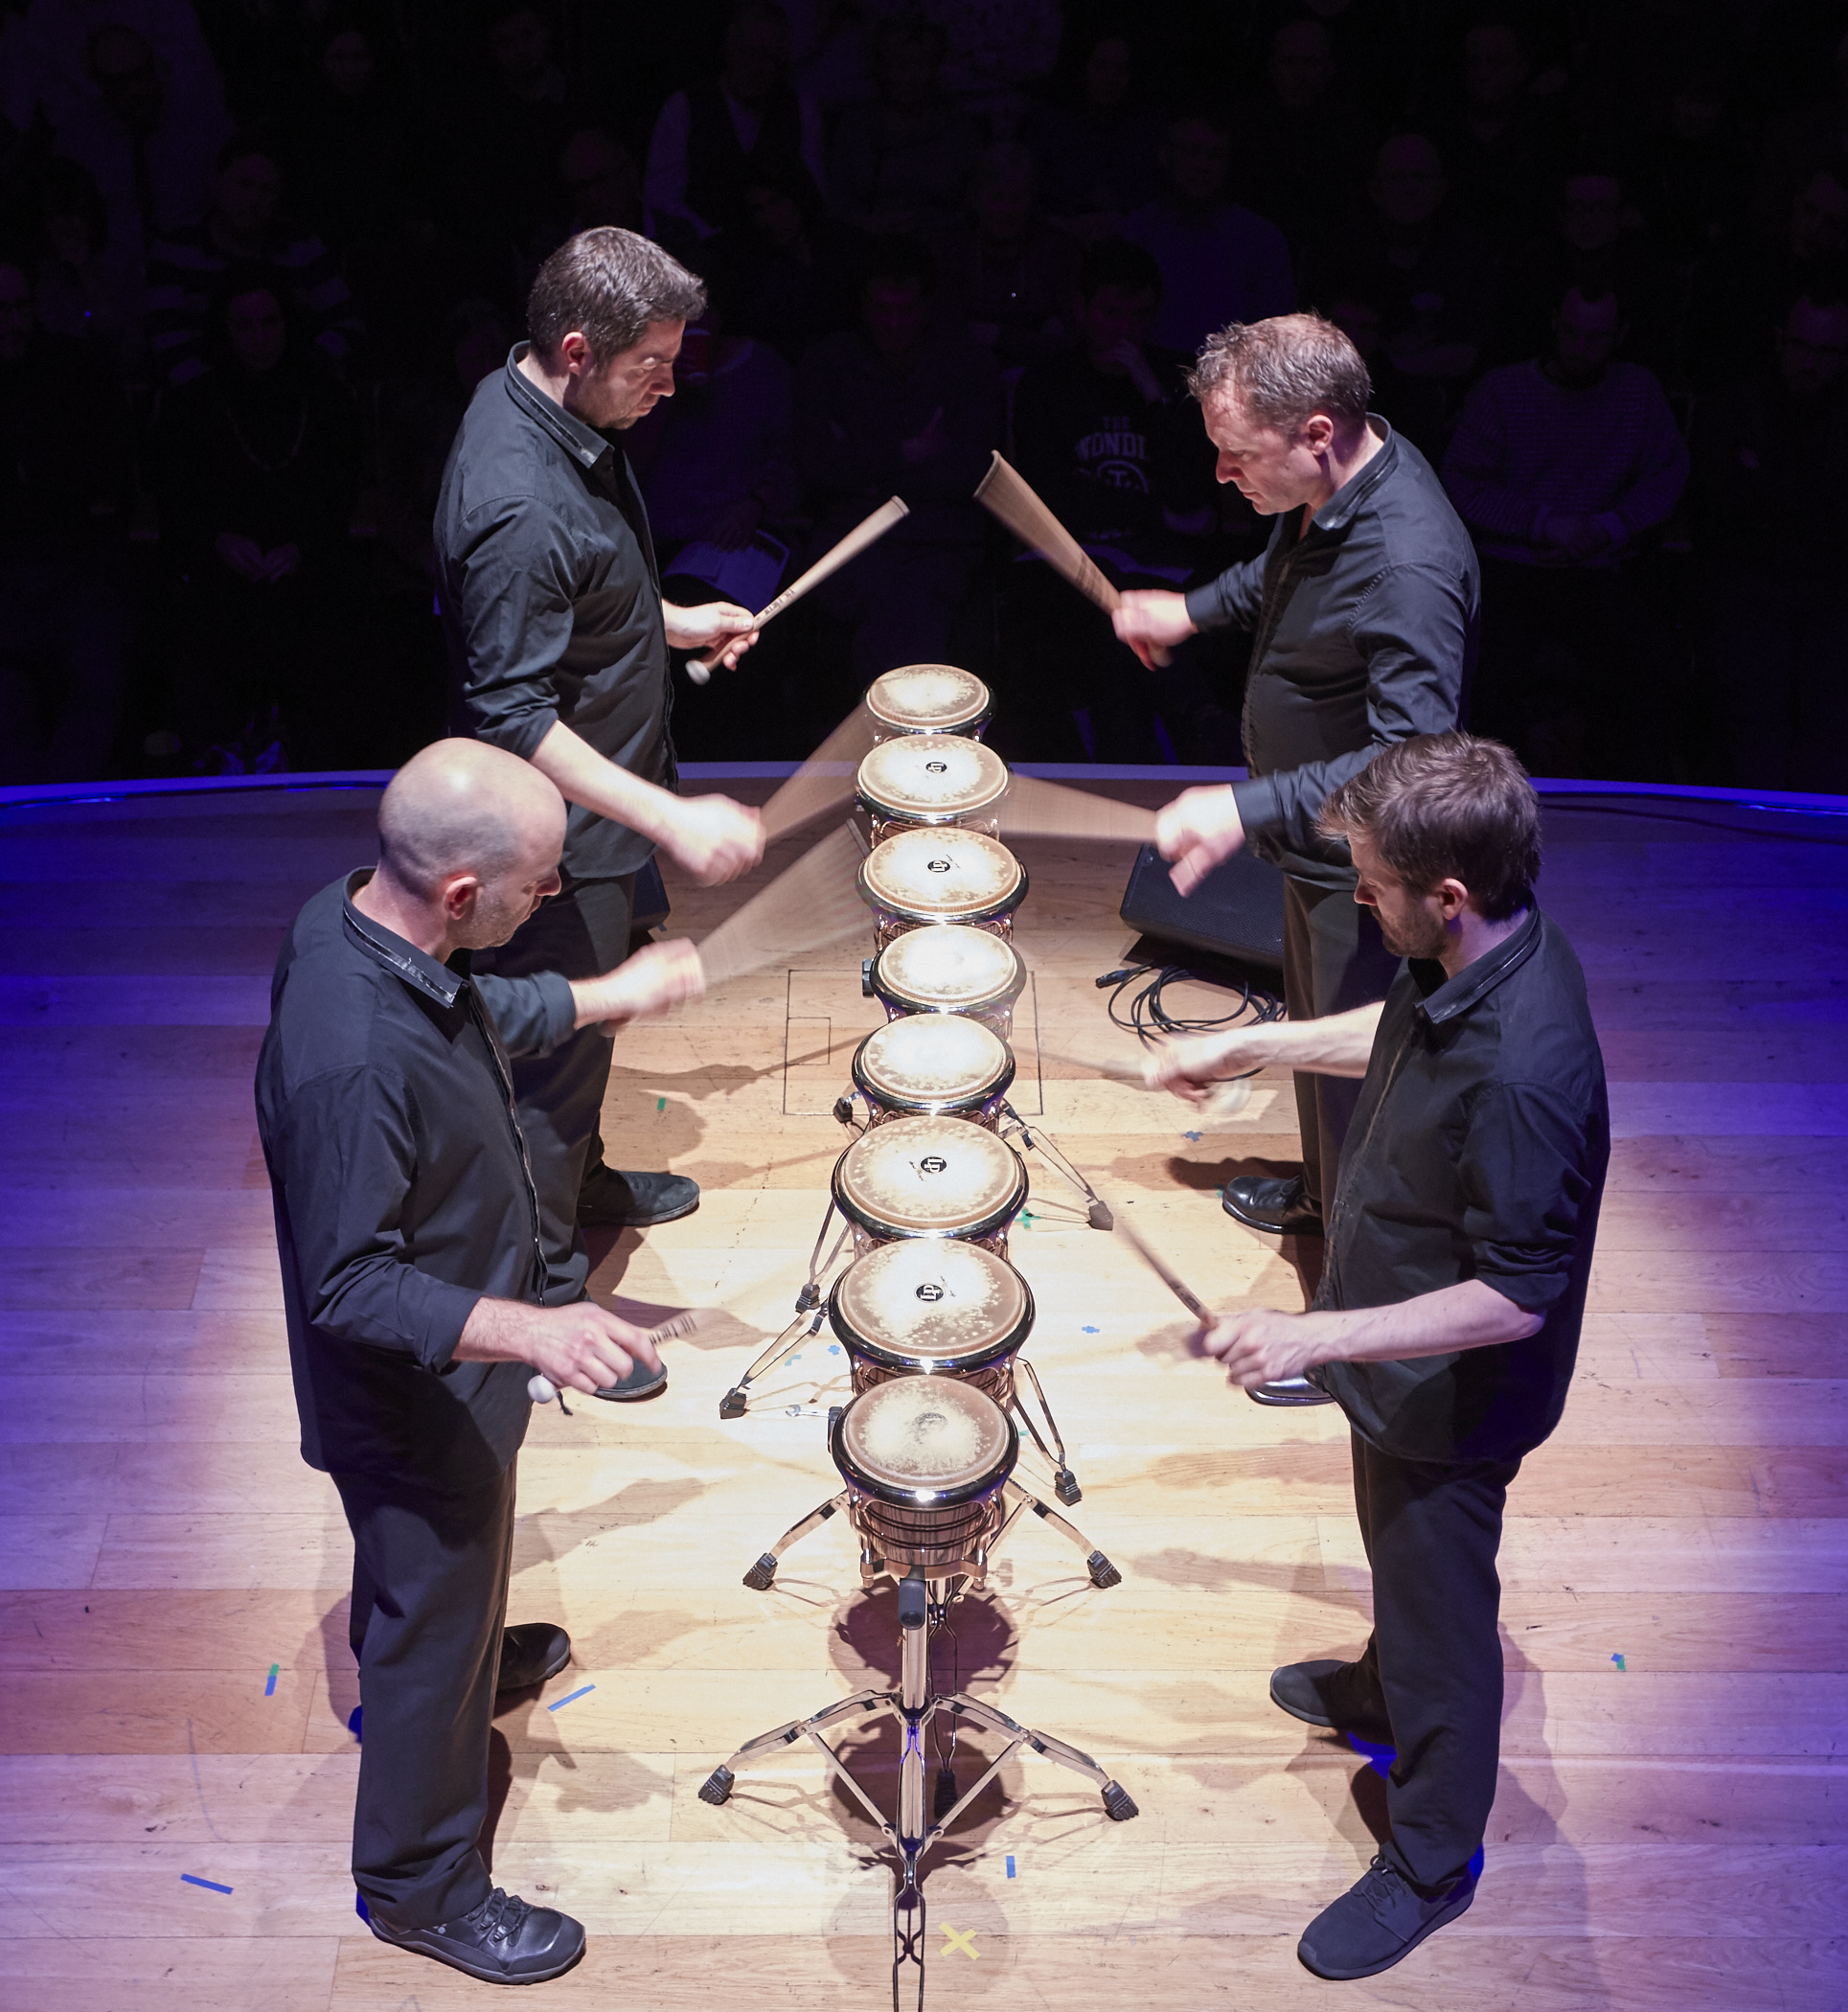 Colin Currie Group at Kings Place 2018